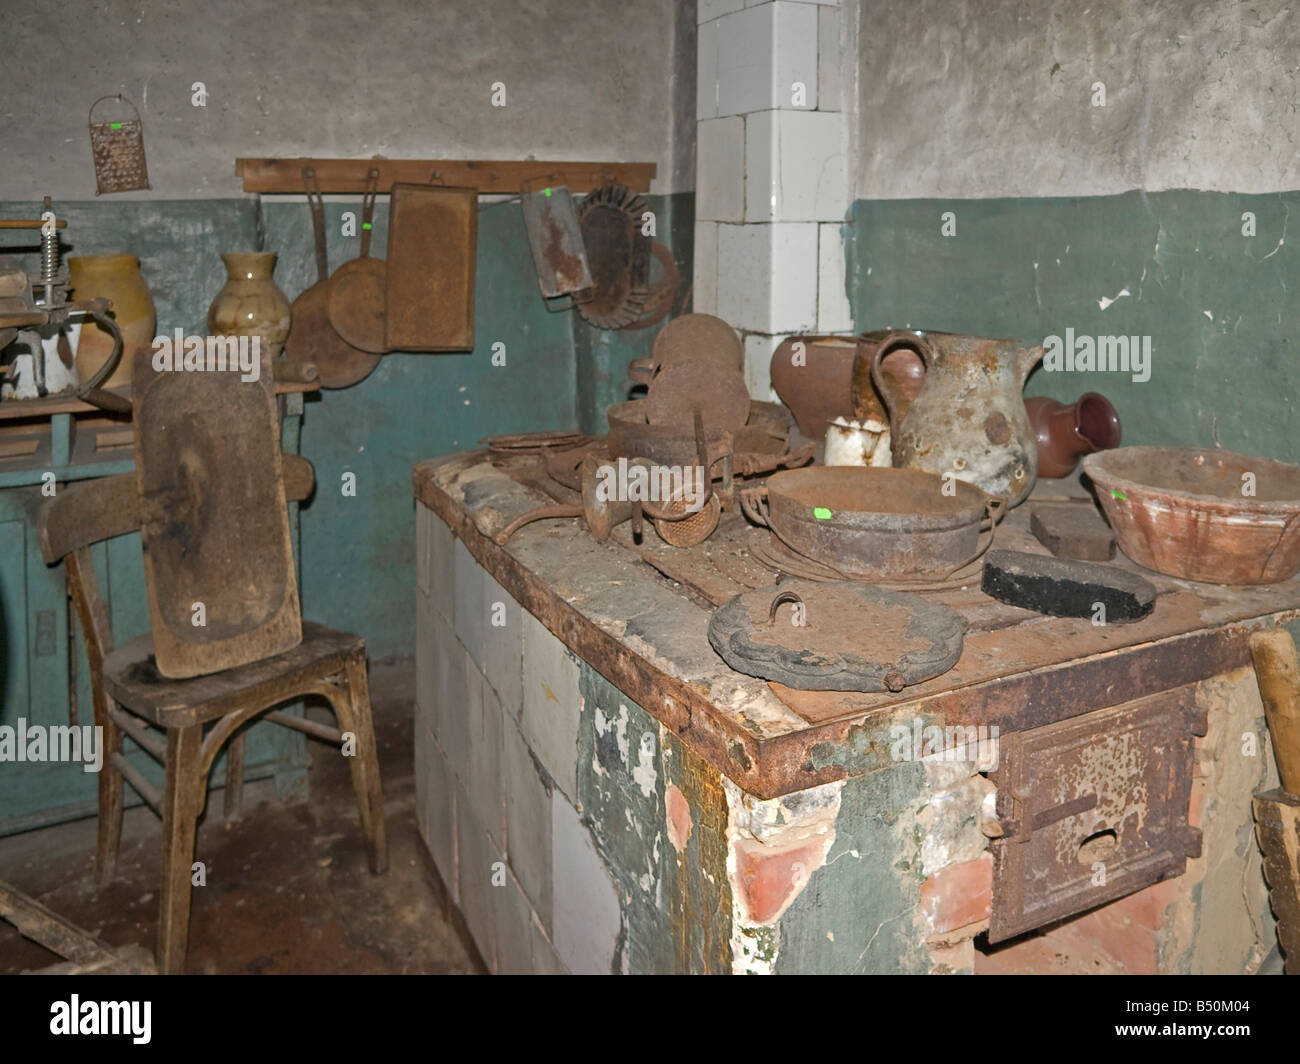 Museum of farmer and fisher with an old kitchen with broken stove near the old town Rusne at the district Klaipeda - Stock Image